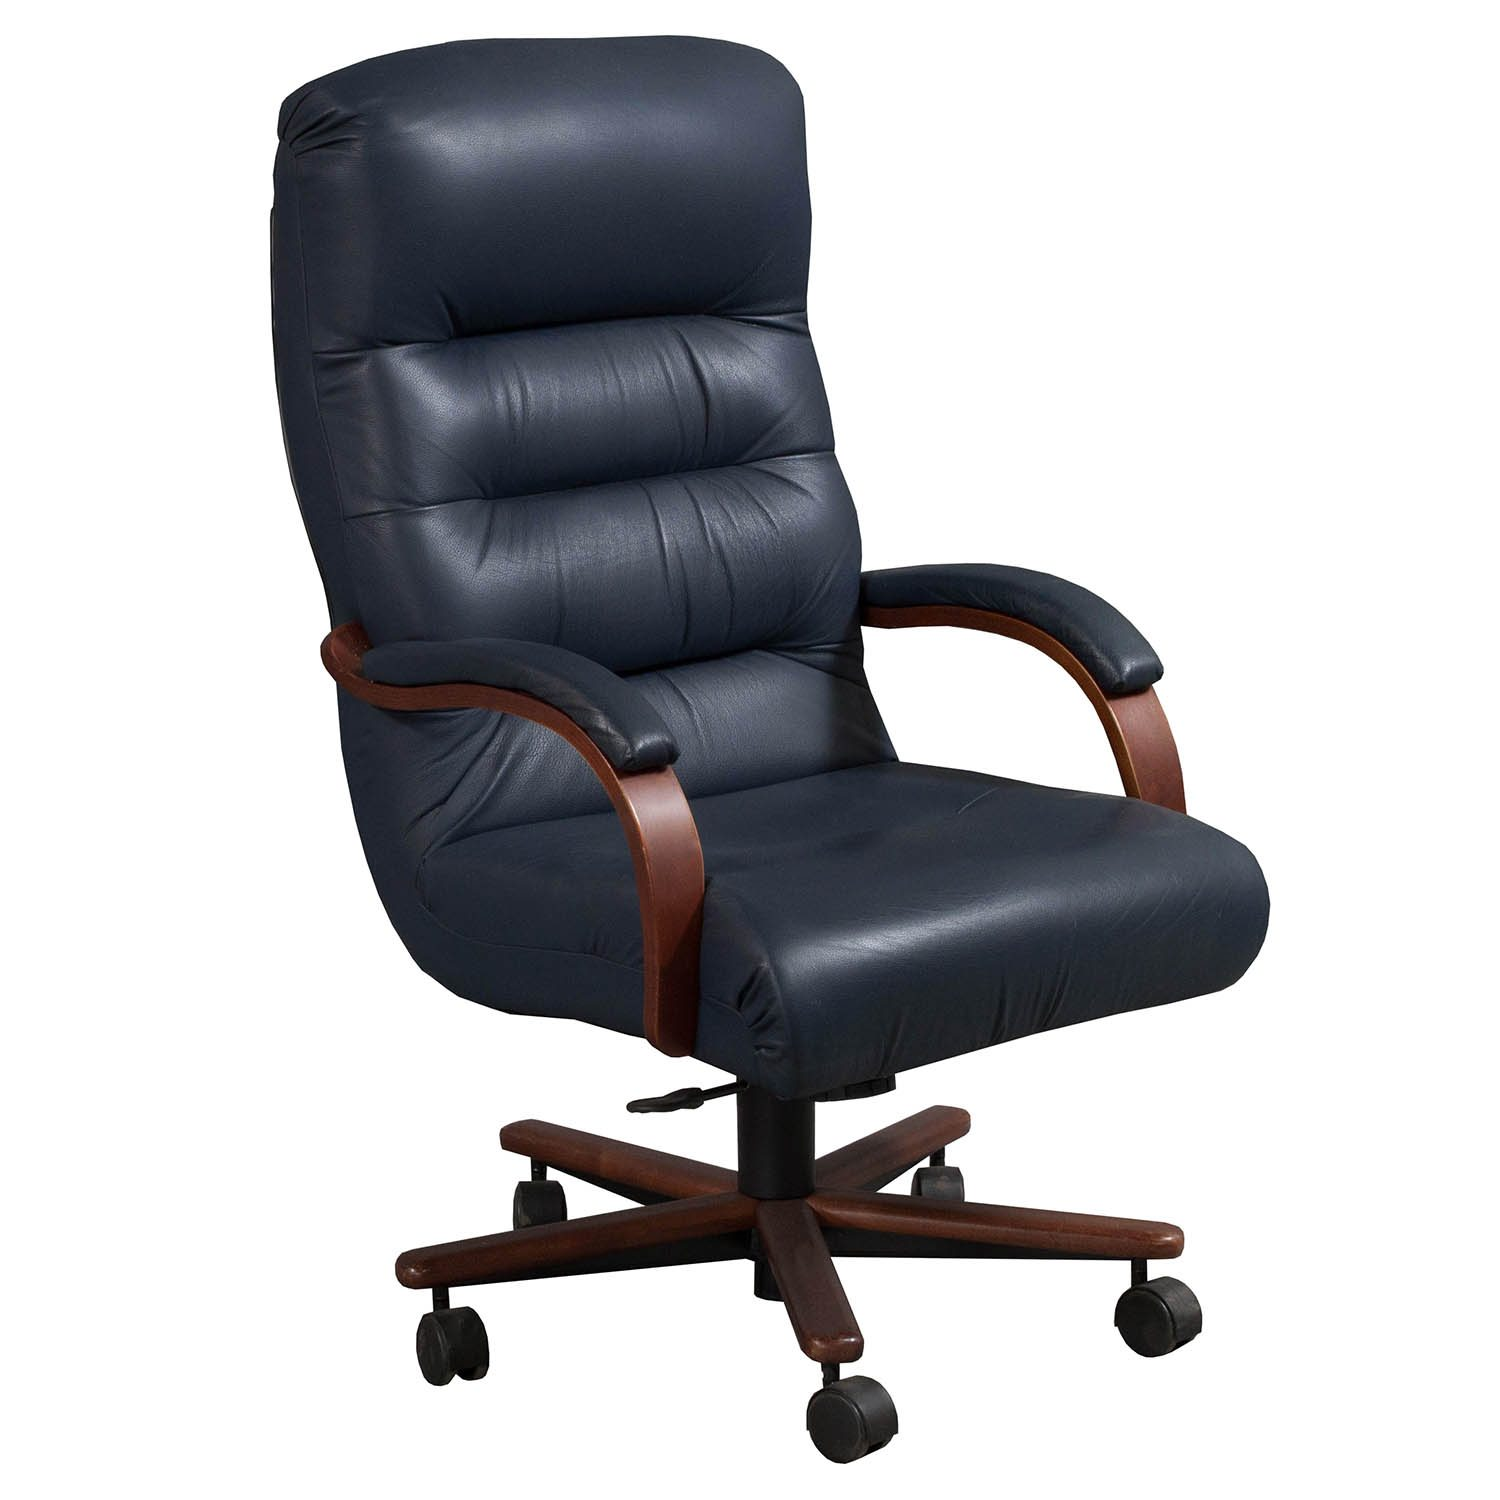 LaZBoy Horizon Used High Back Leather Conference Chair